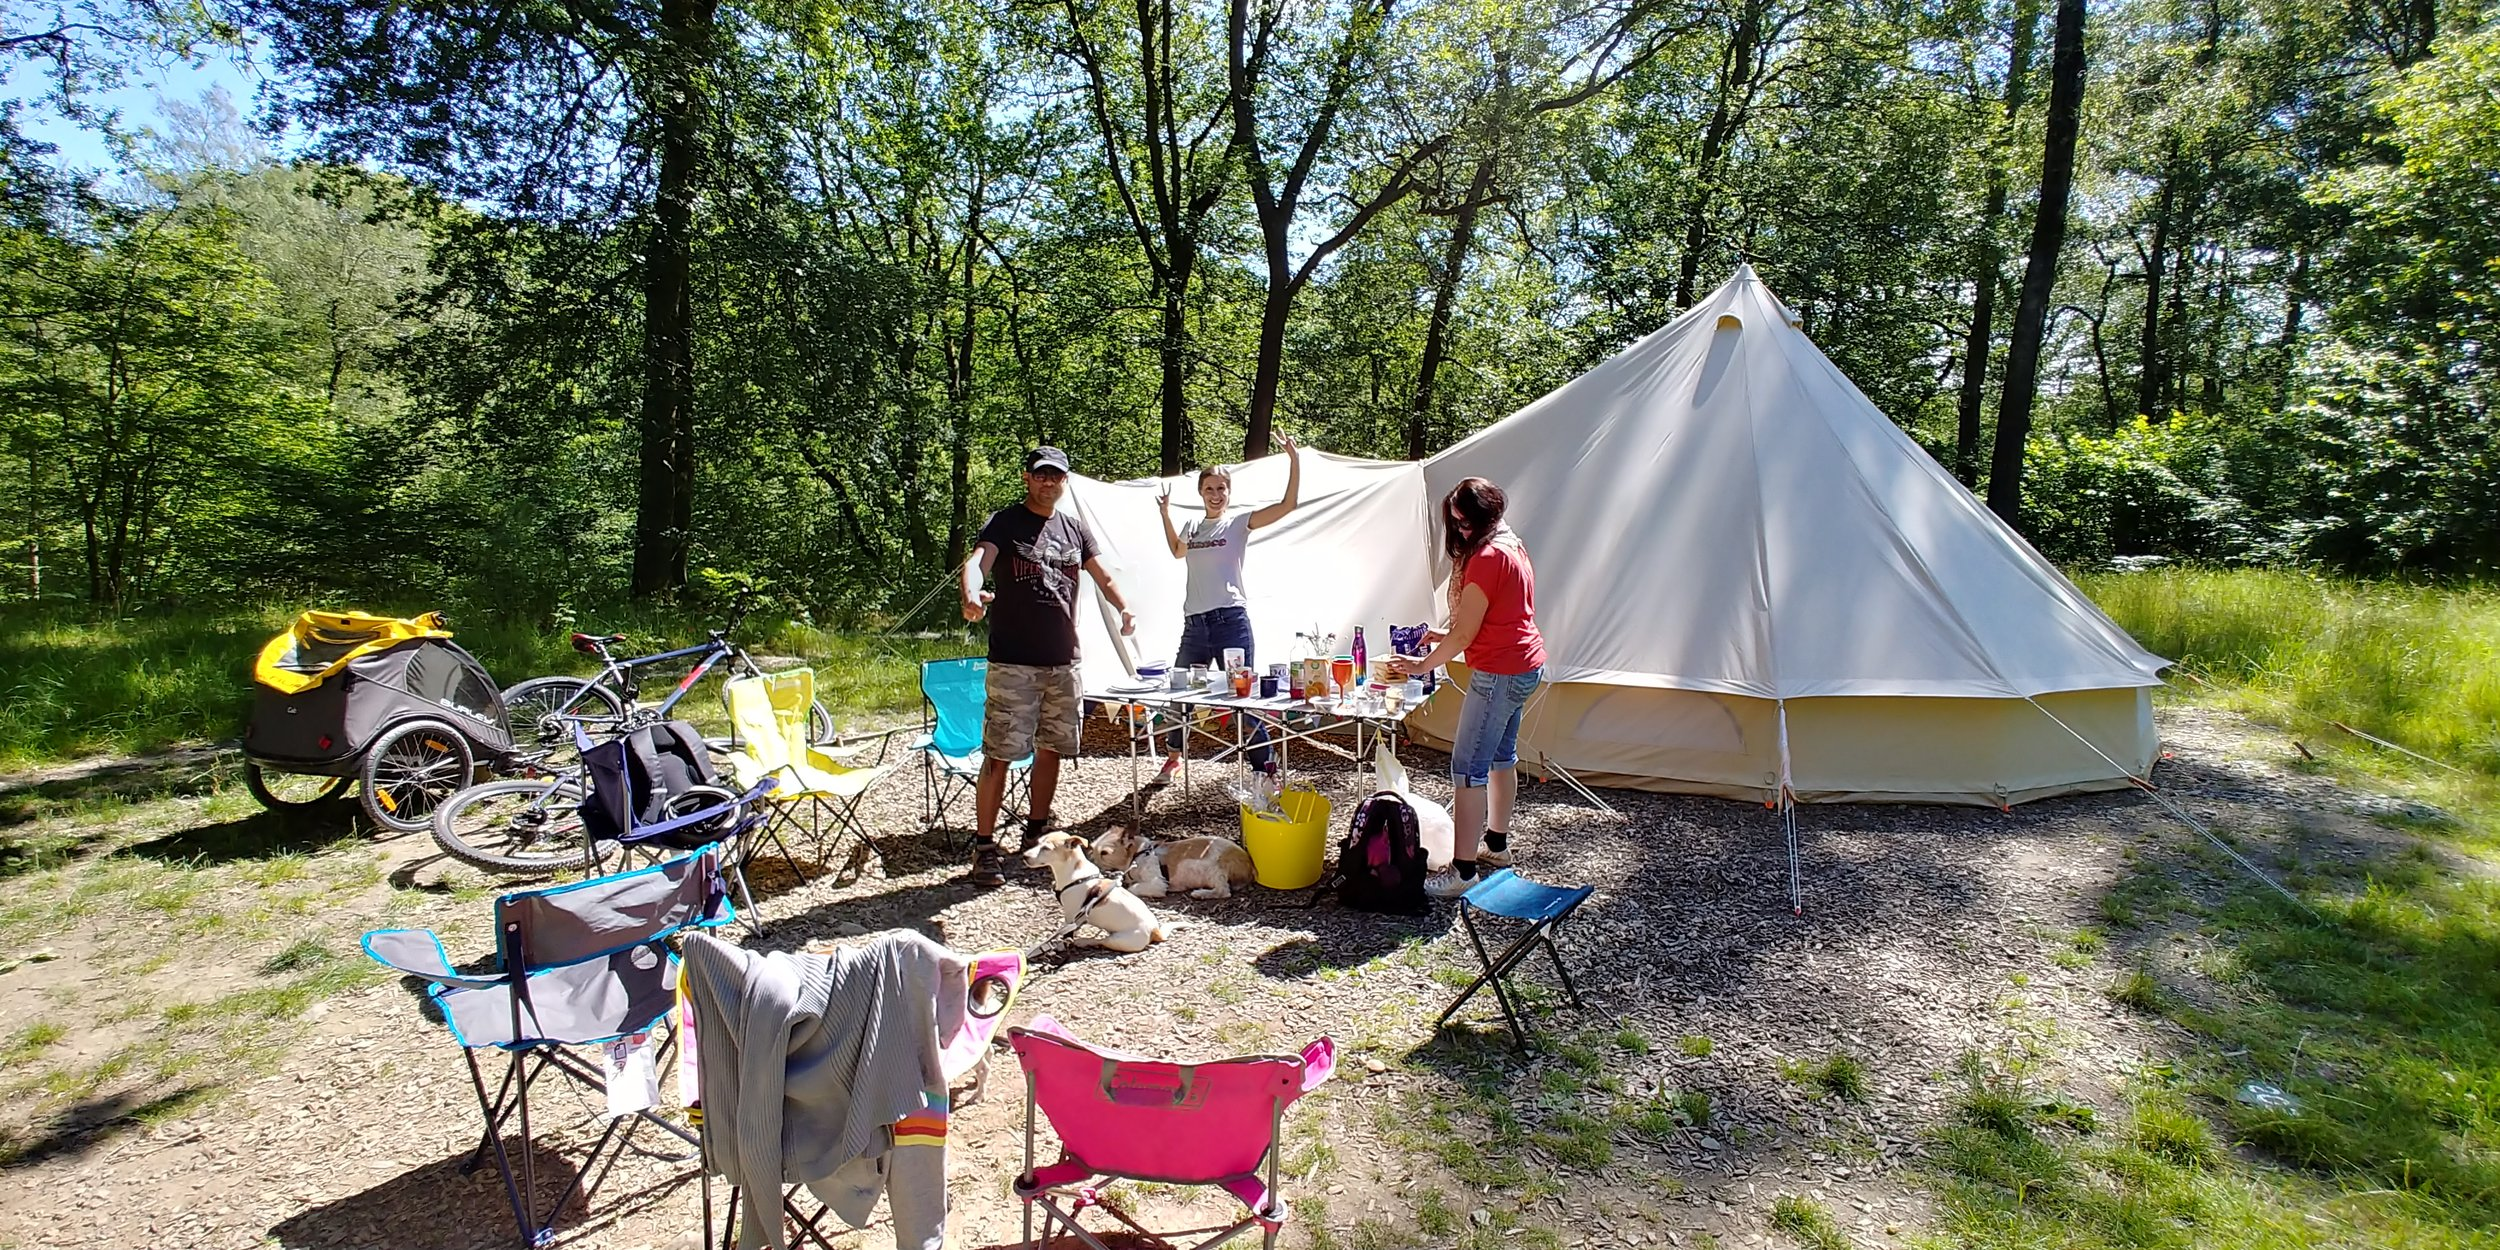 Friday night feels.